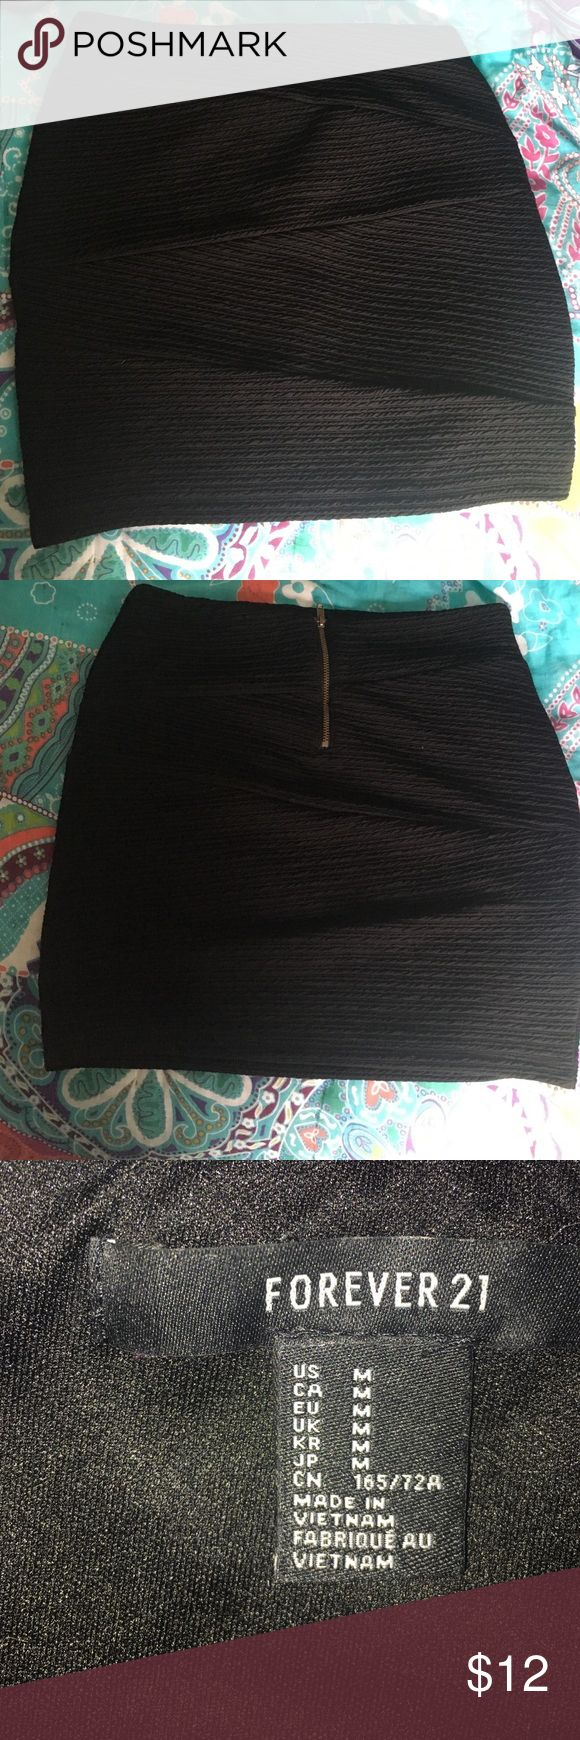 Forever 21 tight black skirt Selling a forever 21 fitted black skirt in size M! Never worn (too big on me). Forever 21 Skirts Mini